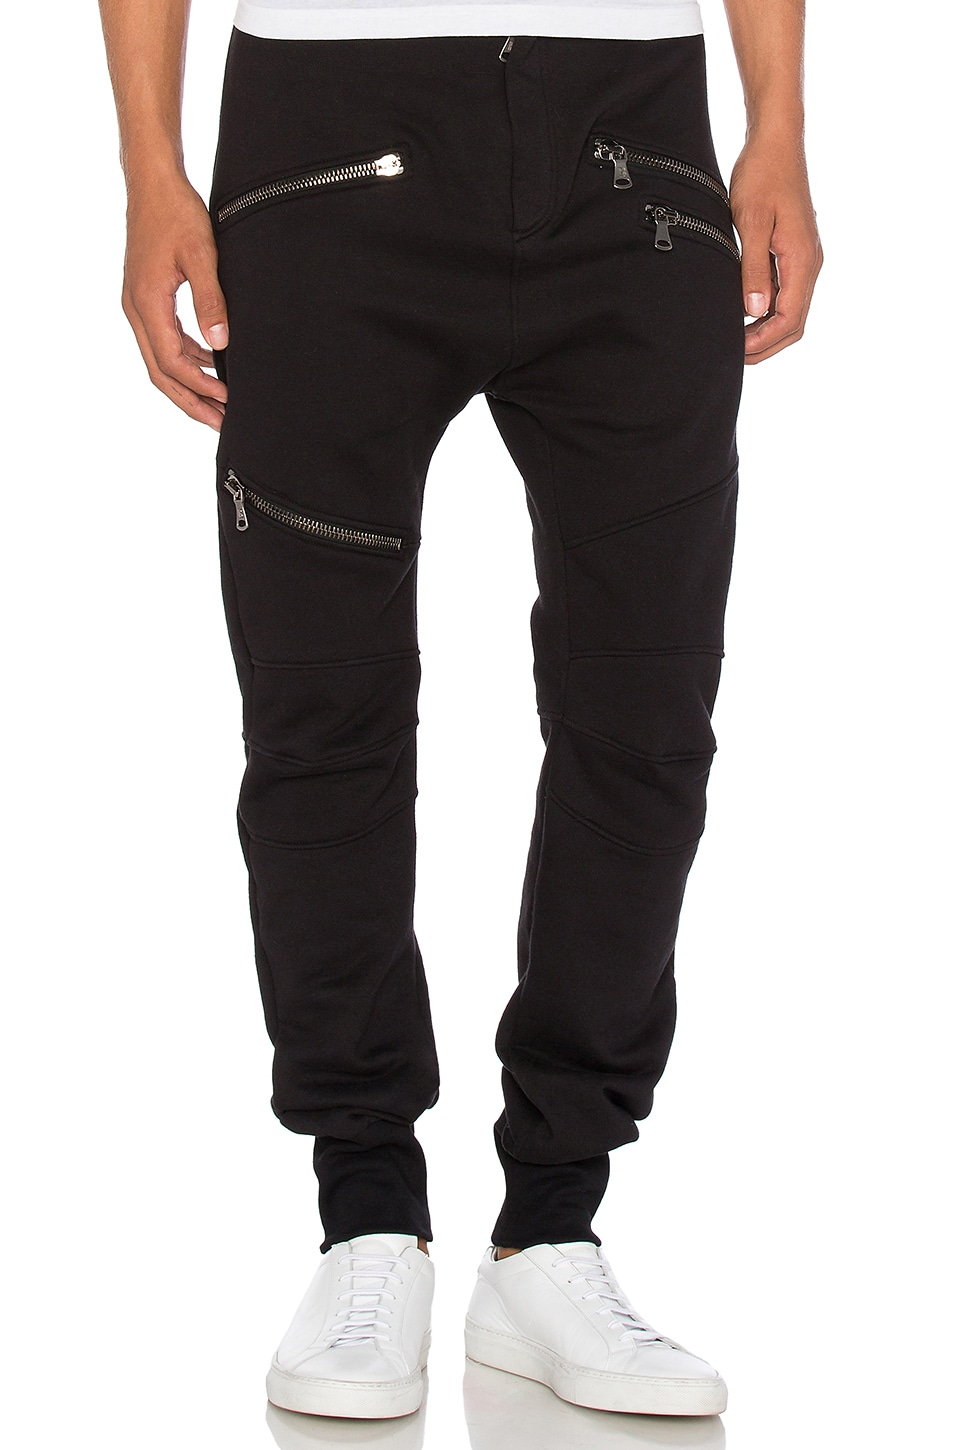 Sweatpants by Pierre Balmain